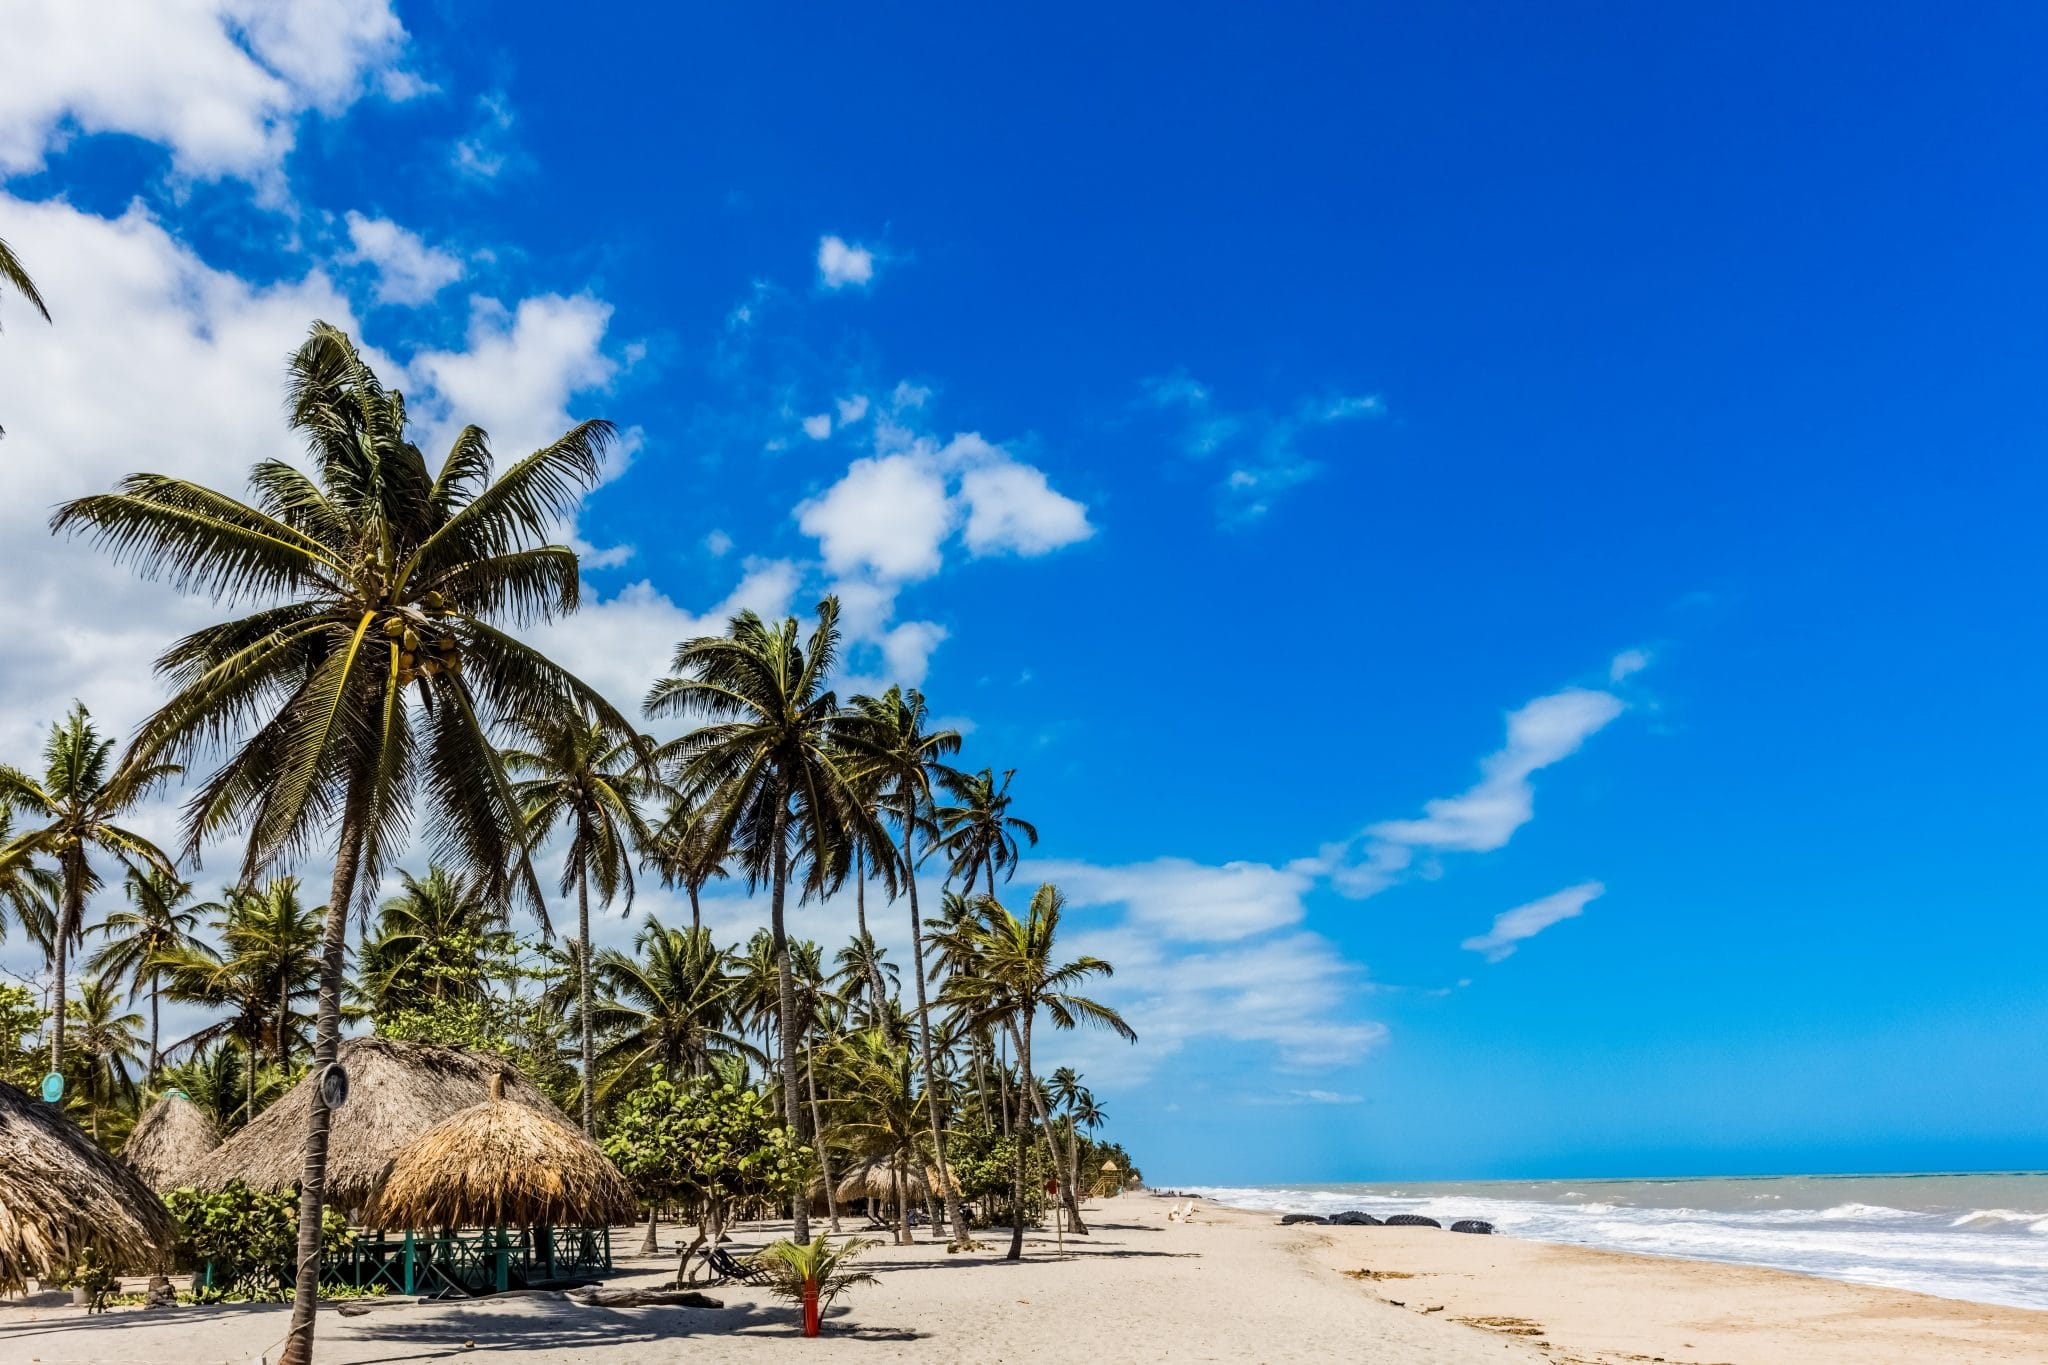 Practical Guide to Palomino, Colombia's Hippest Beach Town (*updated for late 2020 reopen)